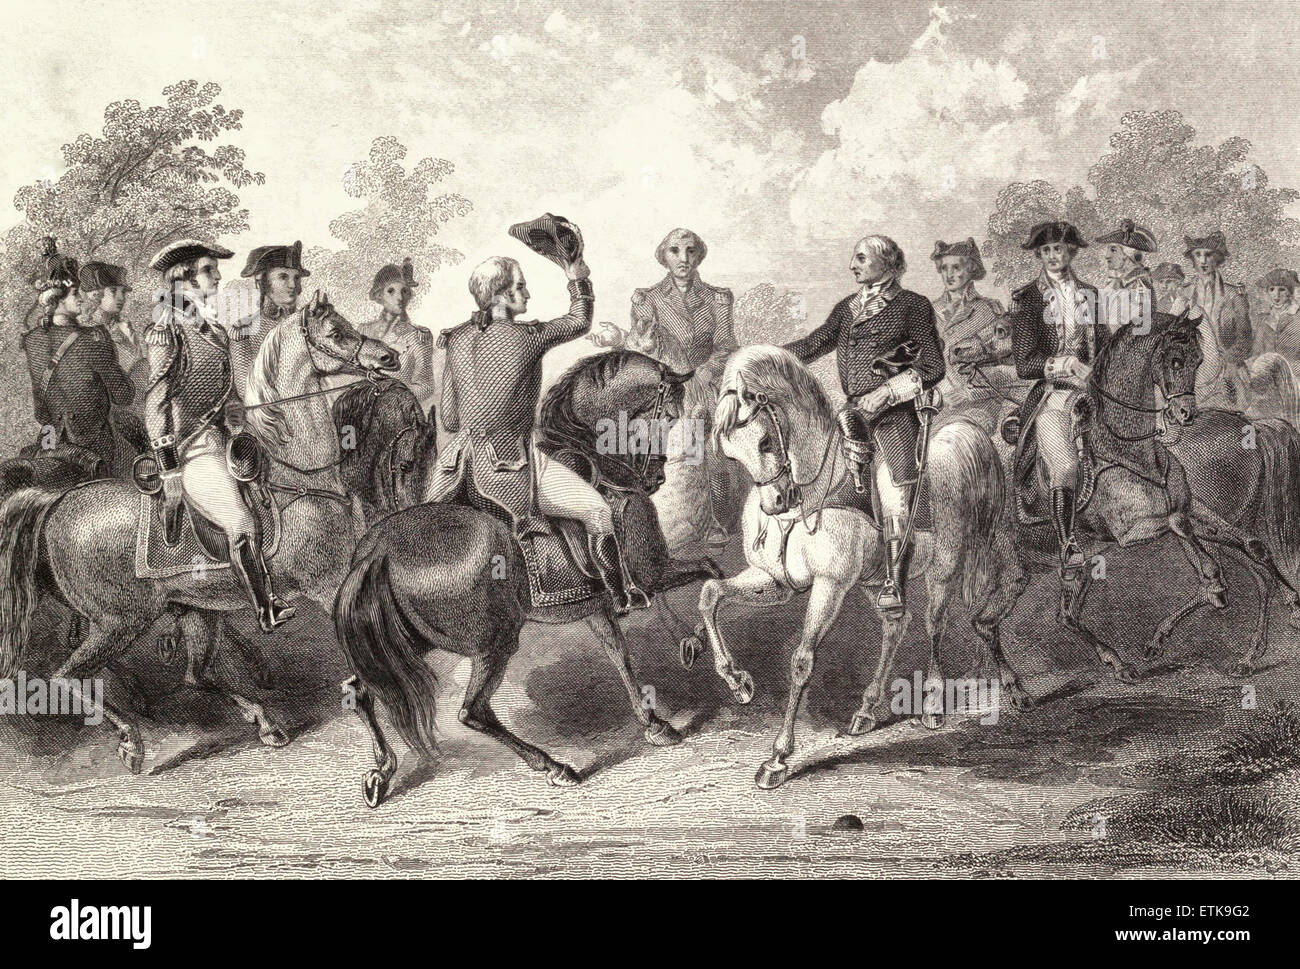 an introduction to the history of the battle of saratoga Saratoga: turning point of america's revolutionary war [richard m ketchum] on amazoncom free shipping on qualifying offers in the summer of 1777 (twelve months after the declaration of.